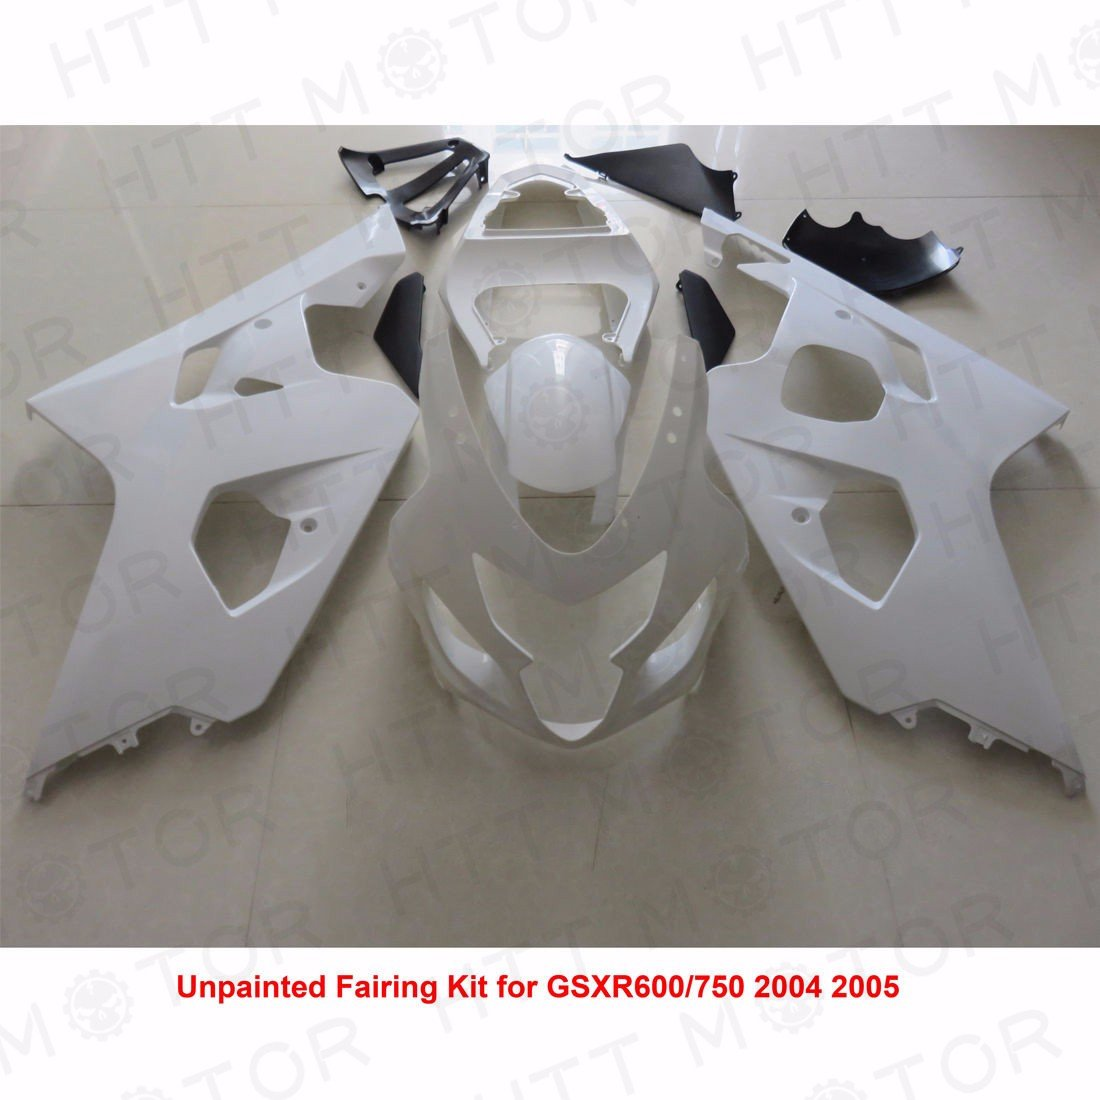 SMT MOTO- Unpainted ABS Plastic Injection Fairings Bodywork for 04 - 05 Suzuki GSXR 600 750